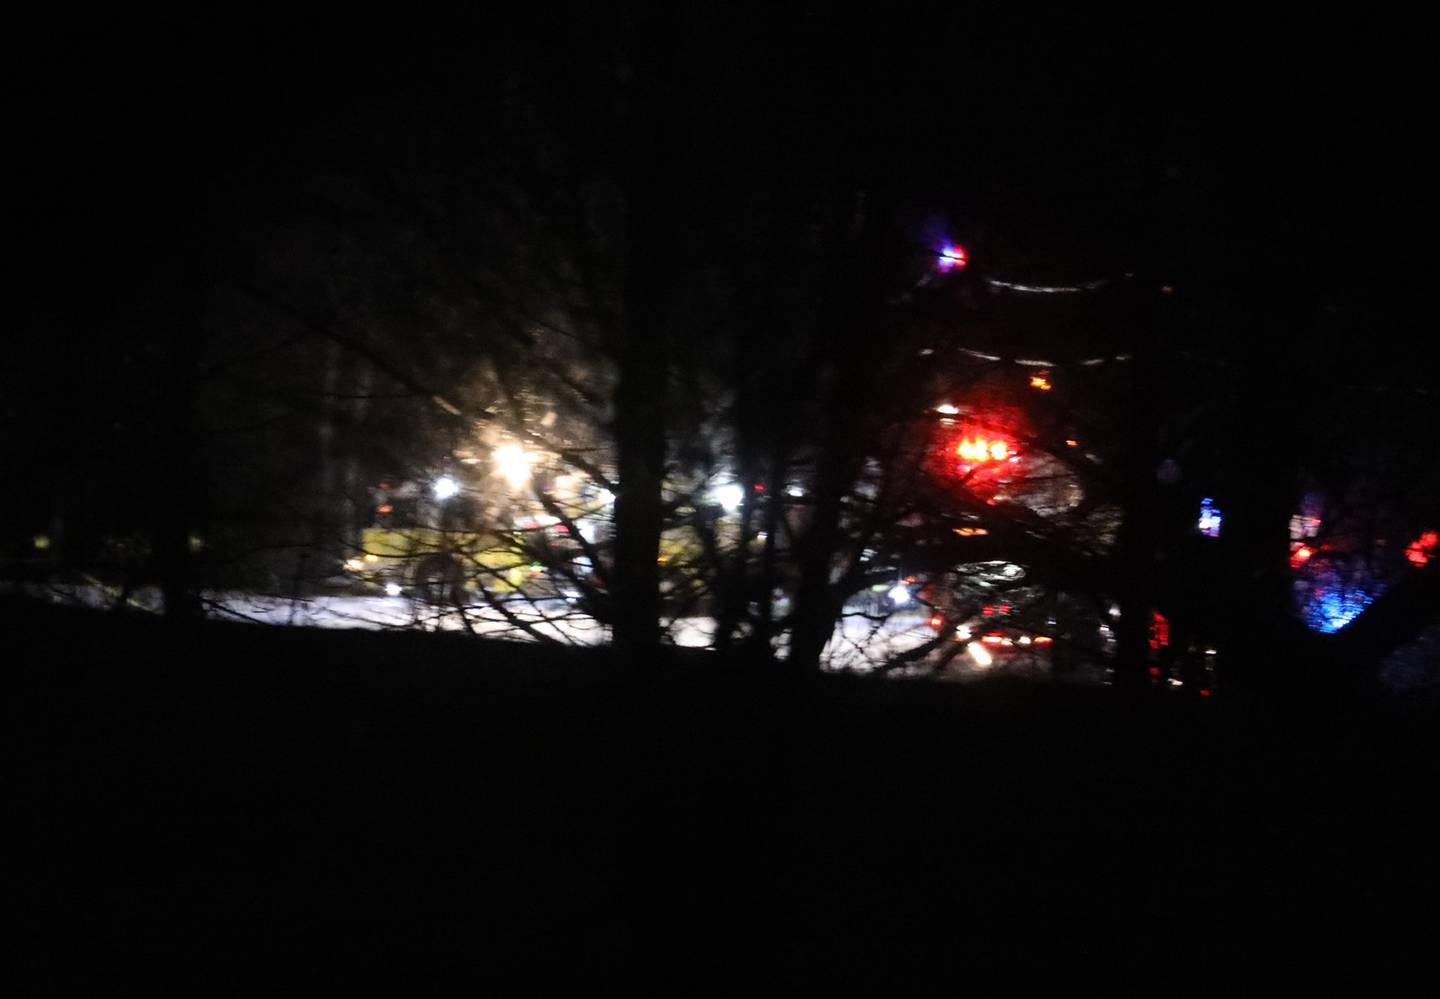 Mendon firefighters and other emergency personnel respond to a military helicopter crash in a field near Cheese Factory Road and W. Bloomfield Road in Mendon, N.Y., late Wednesday, Jan. 20, 2021.